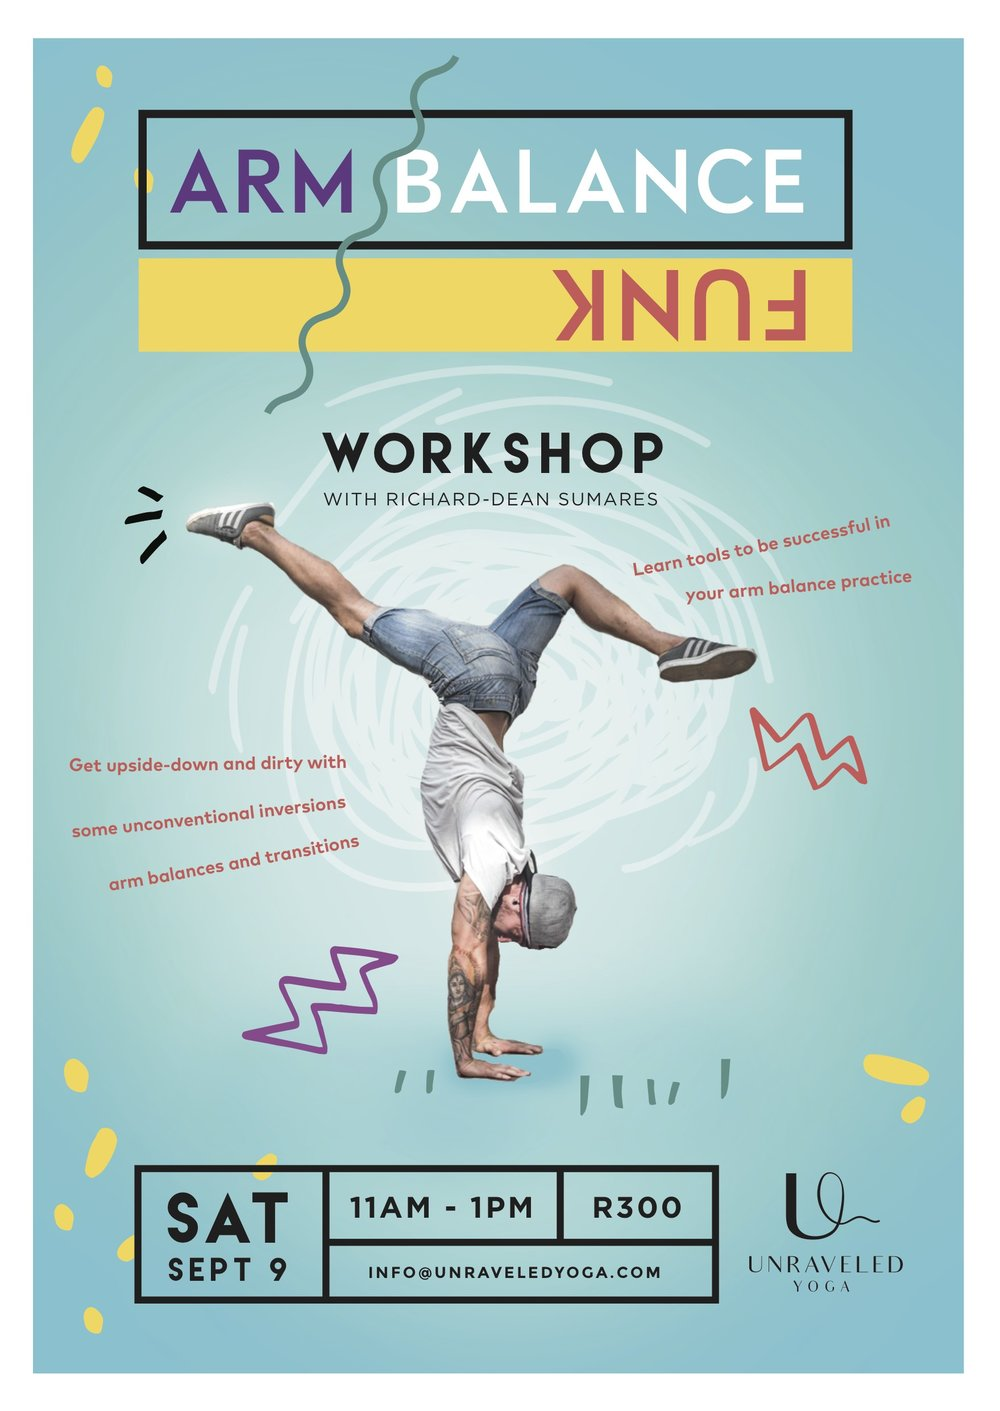 cape town yoga vinyasa arm balance workshop